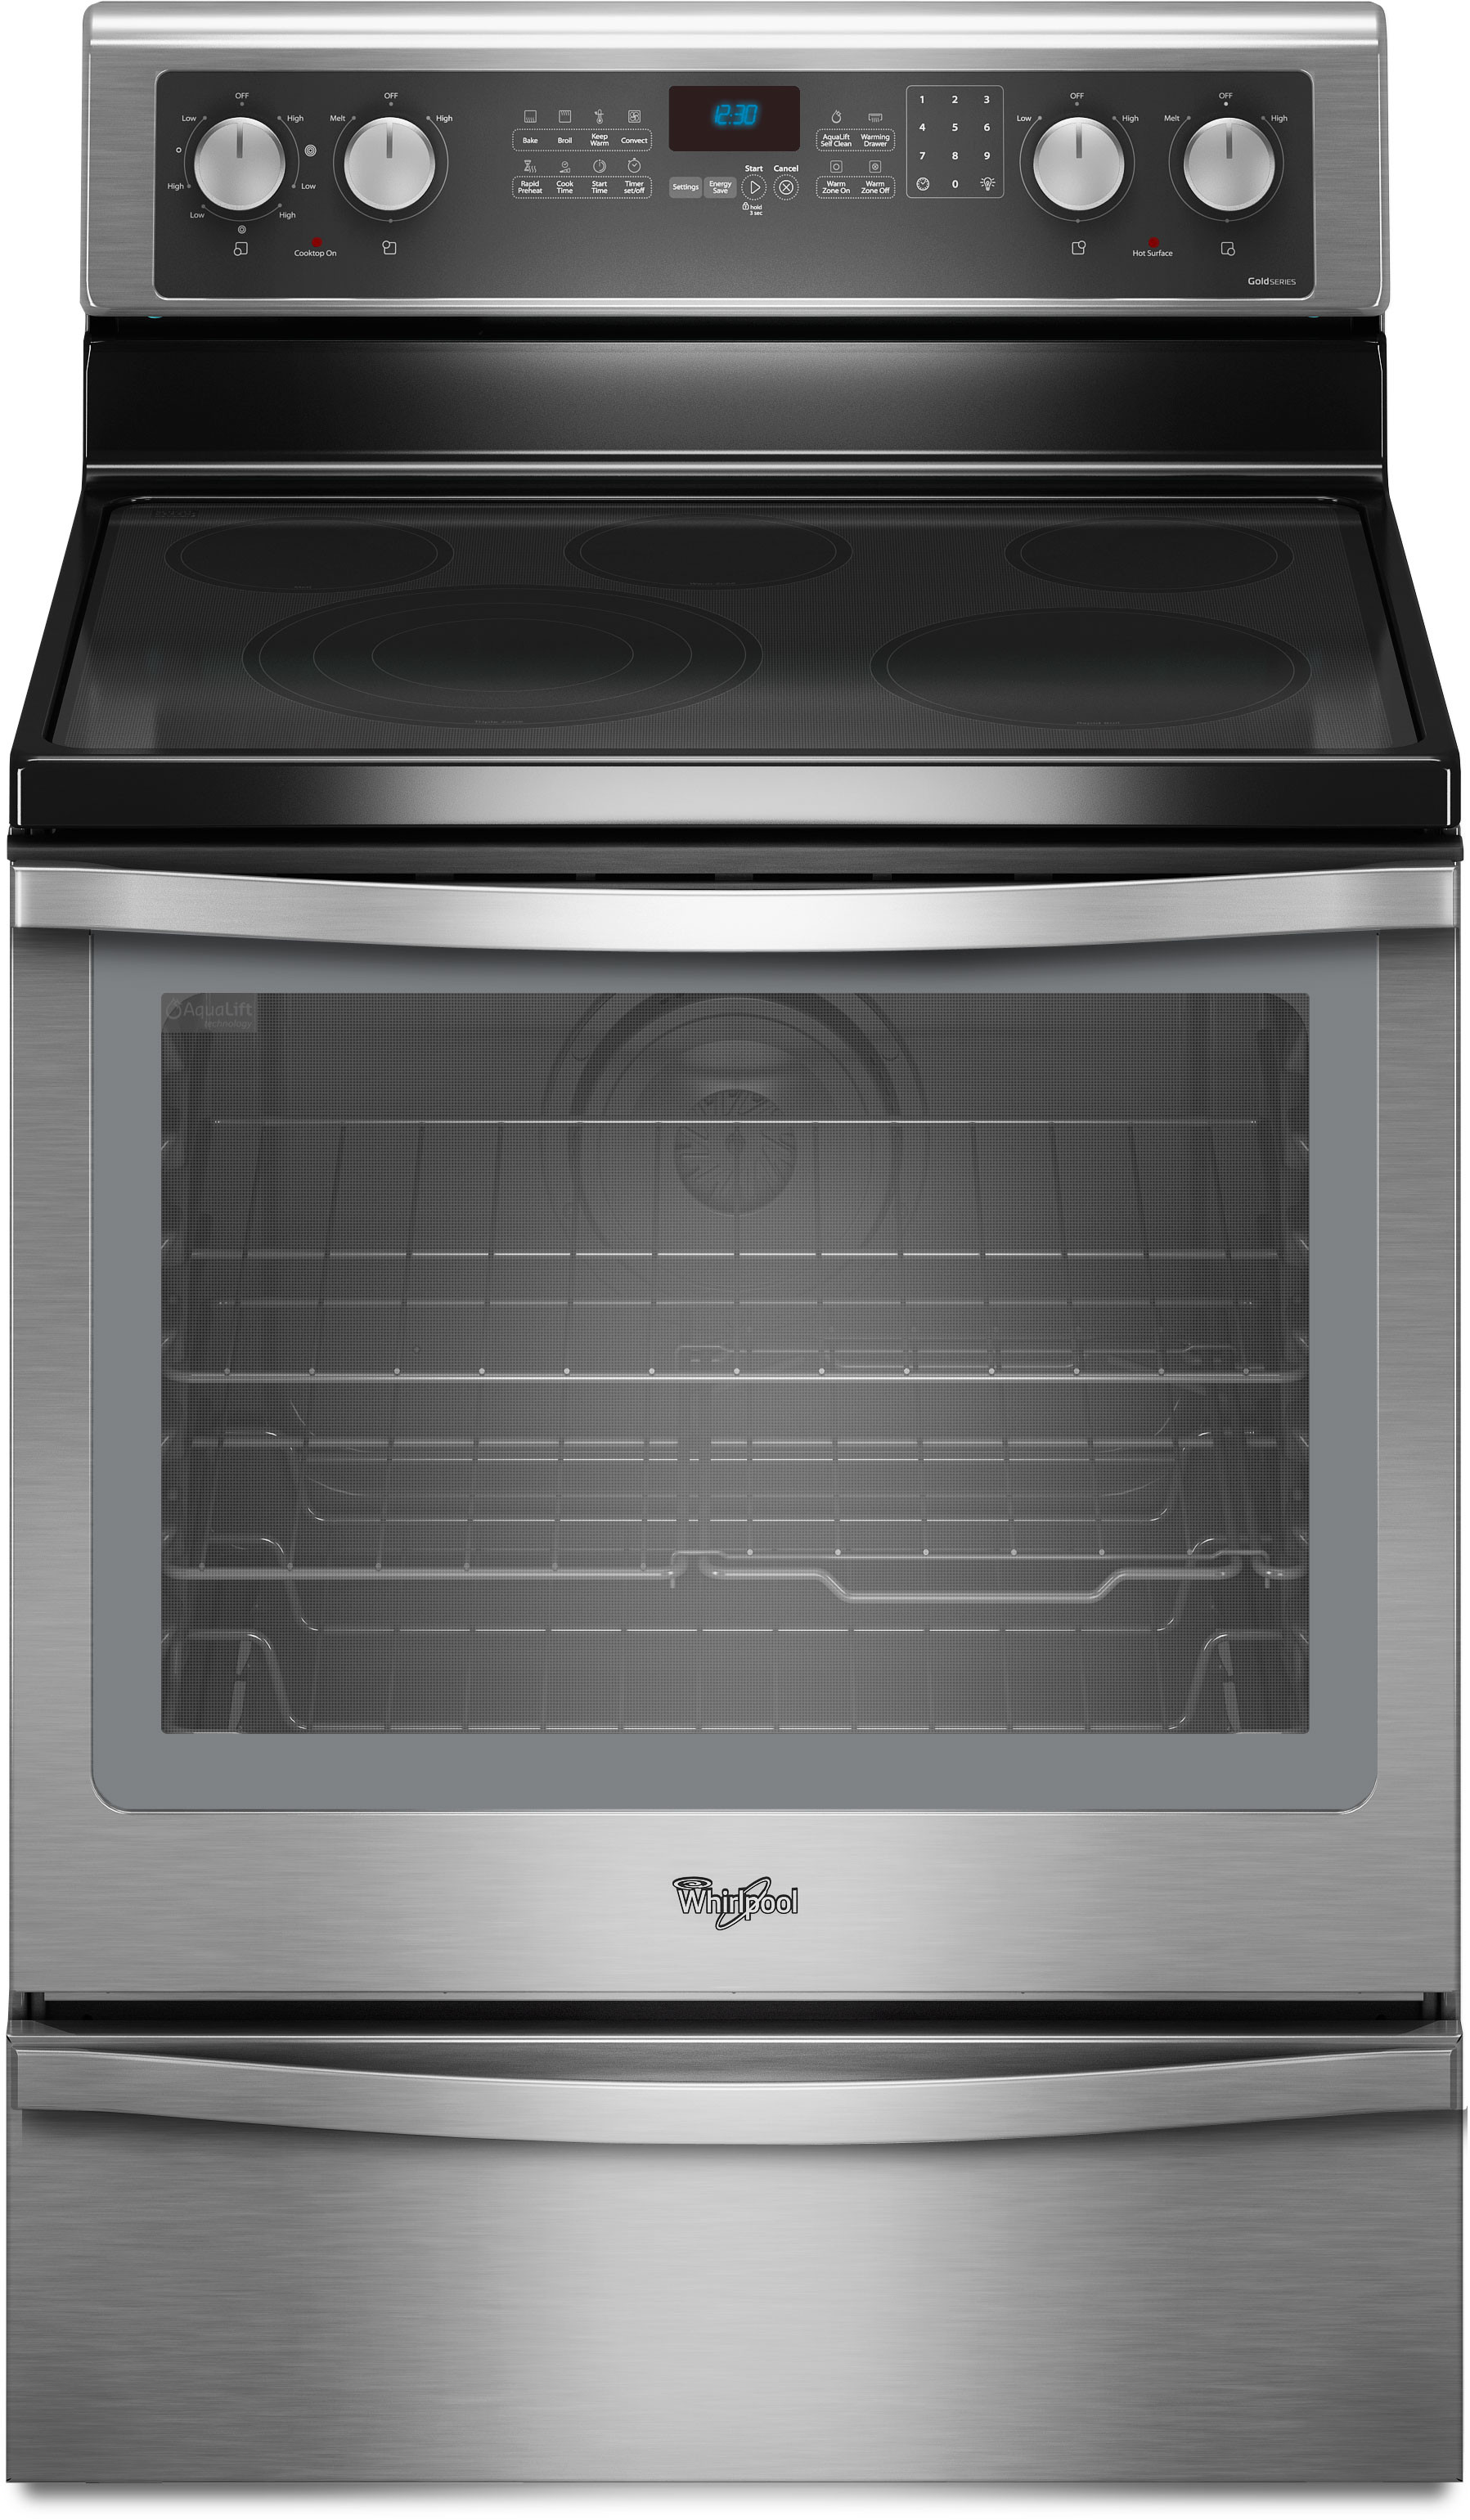 Whirlpool Wfe720h0as 30 Inch Freestanding Smoothtop